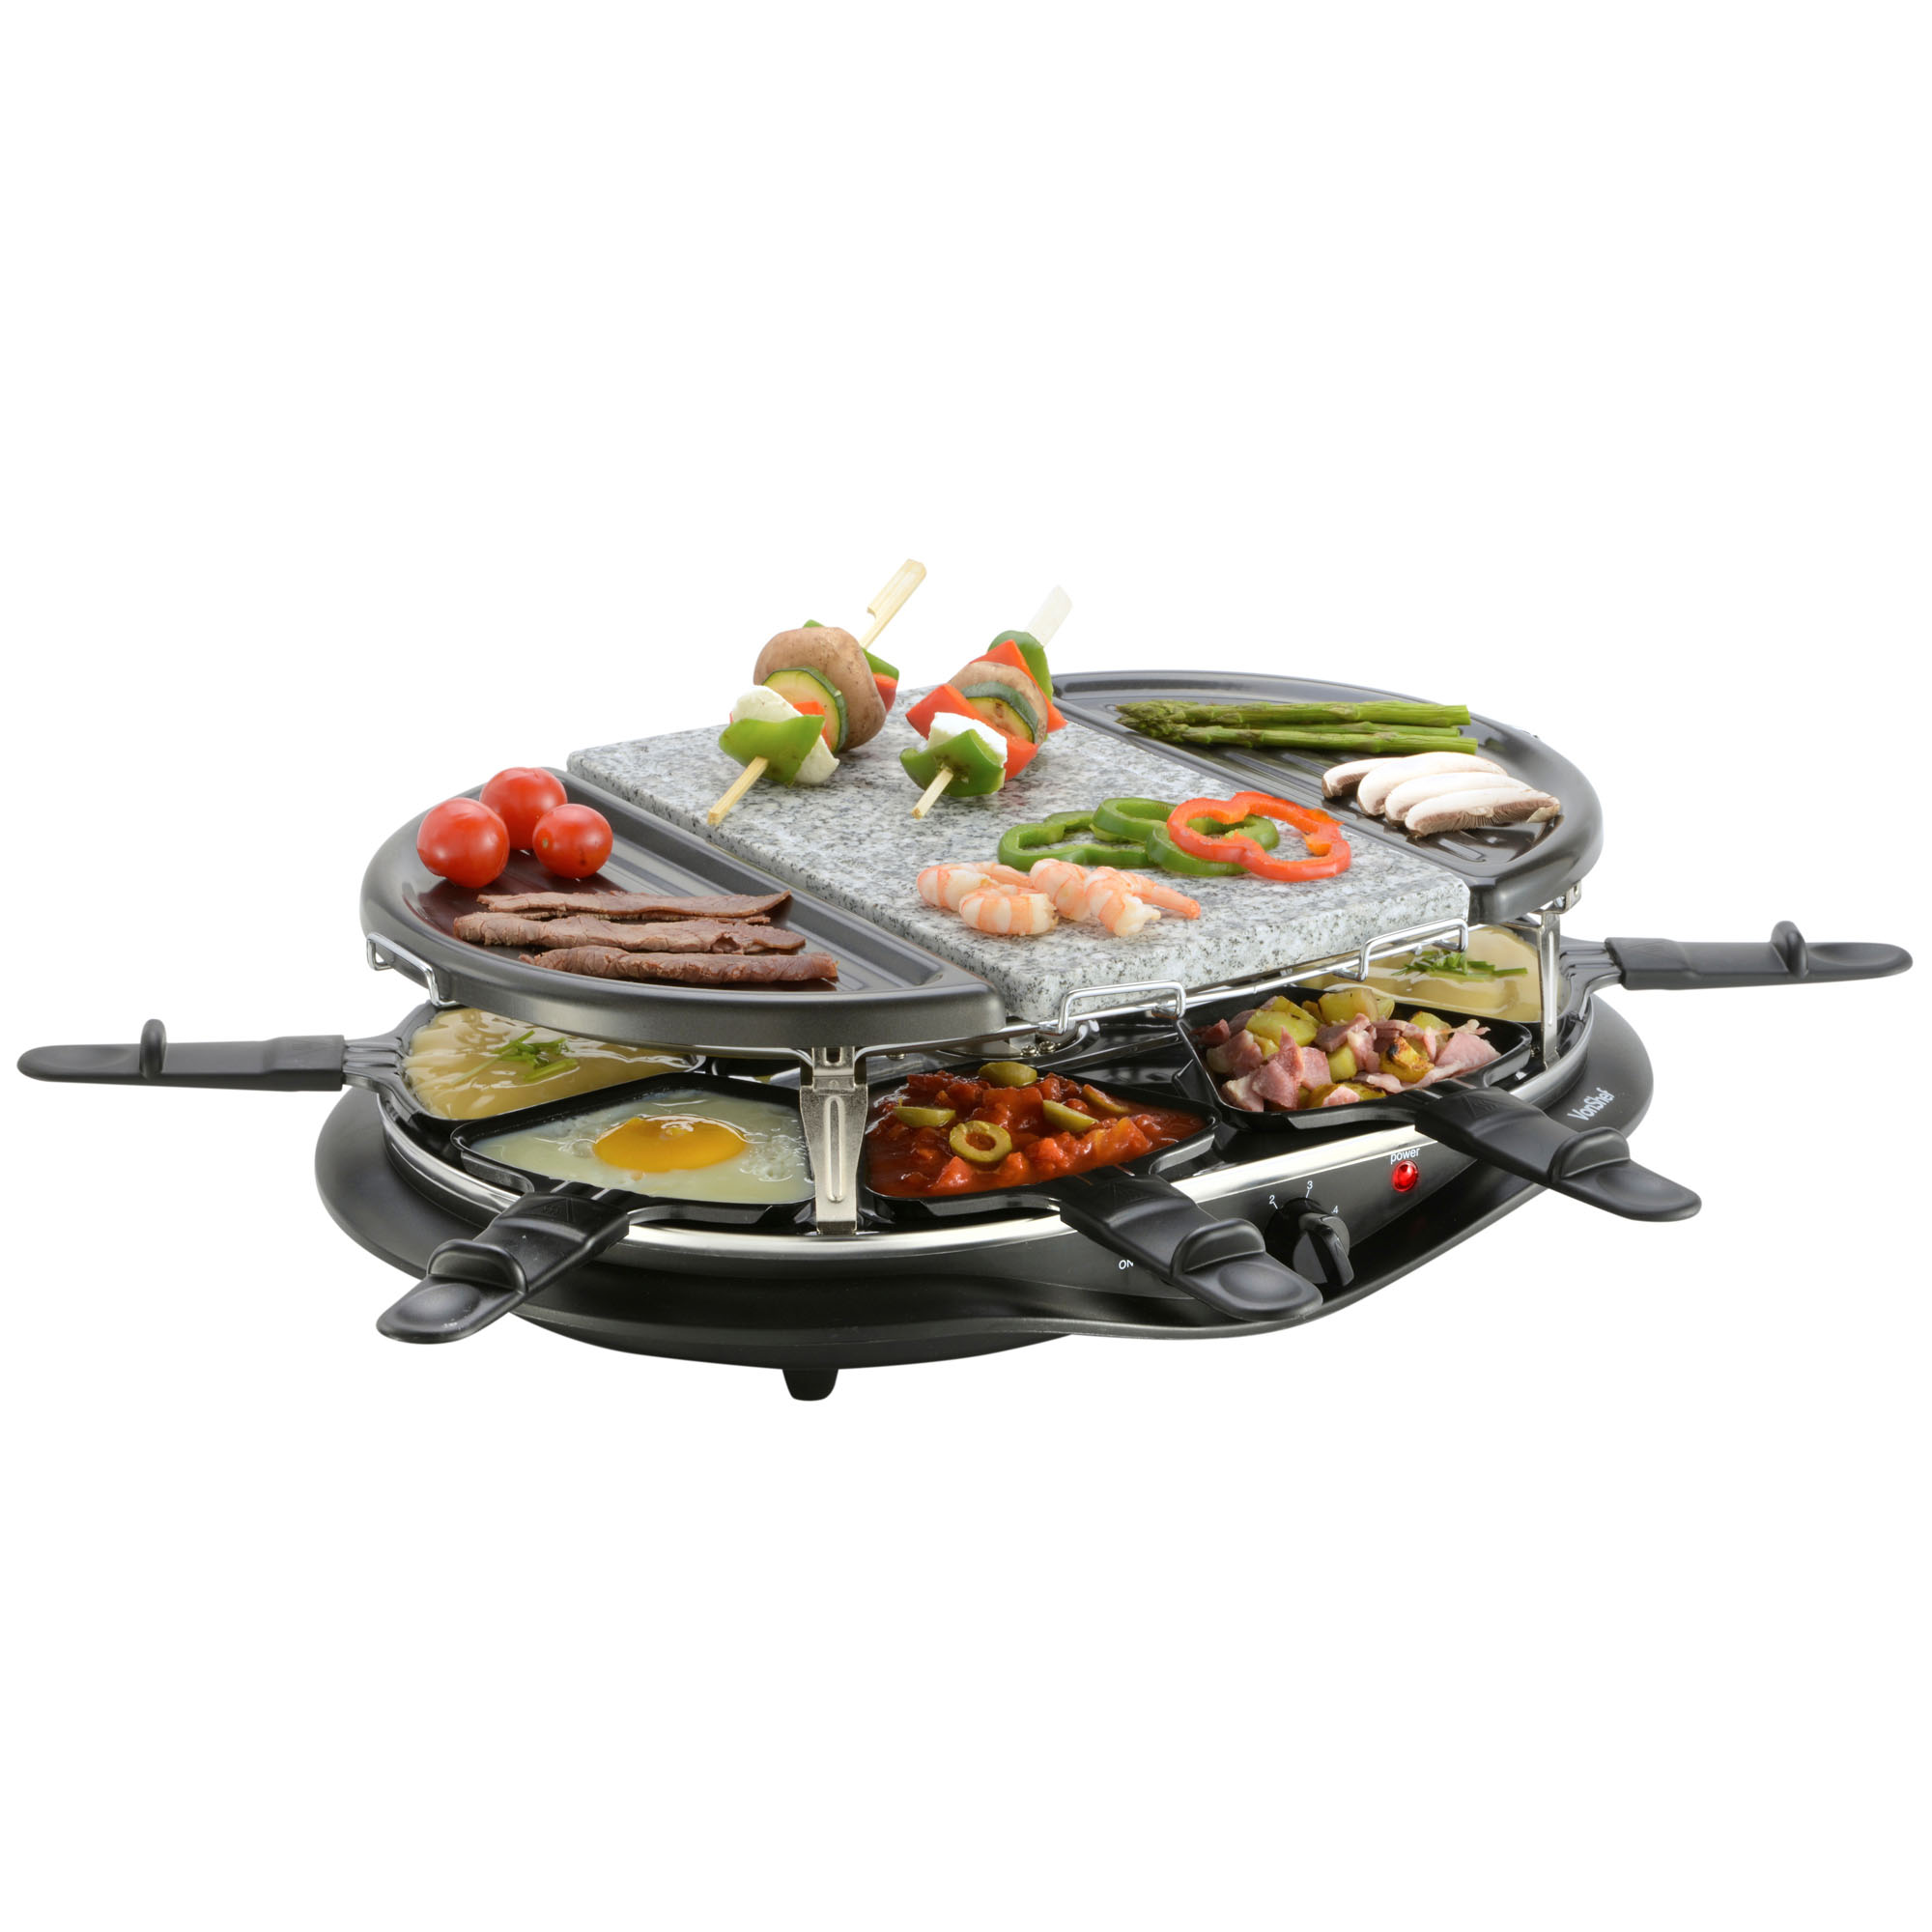 vonshef 8 person raclette grill indoor bbq with natural stone plate ebay. Black Bedroom Furniture Sets. Home Design Ideas